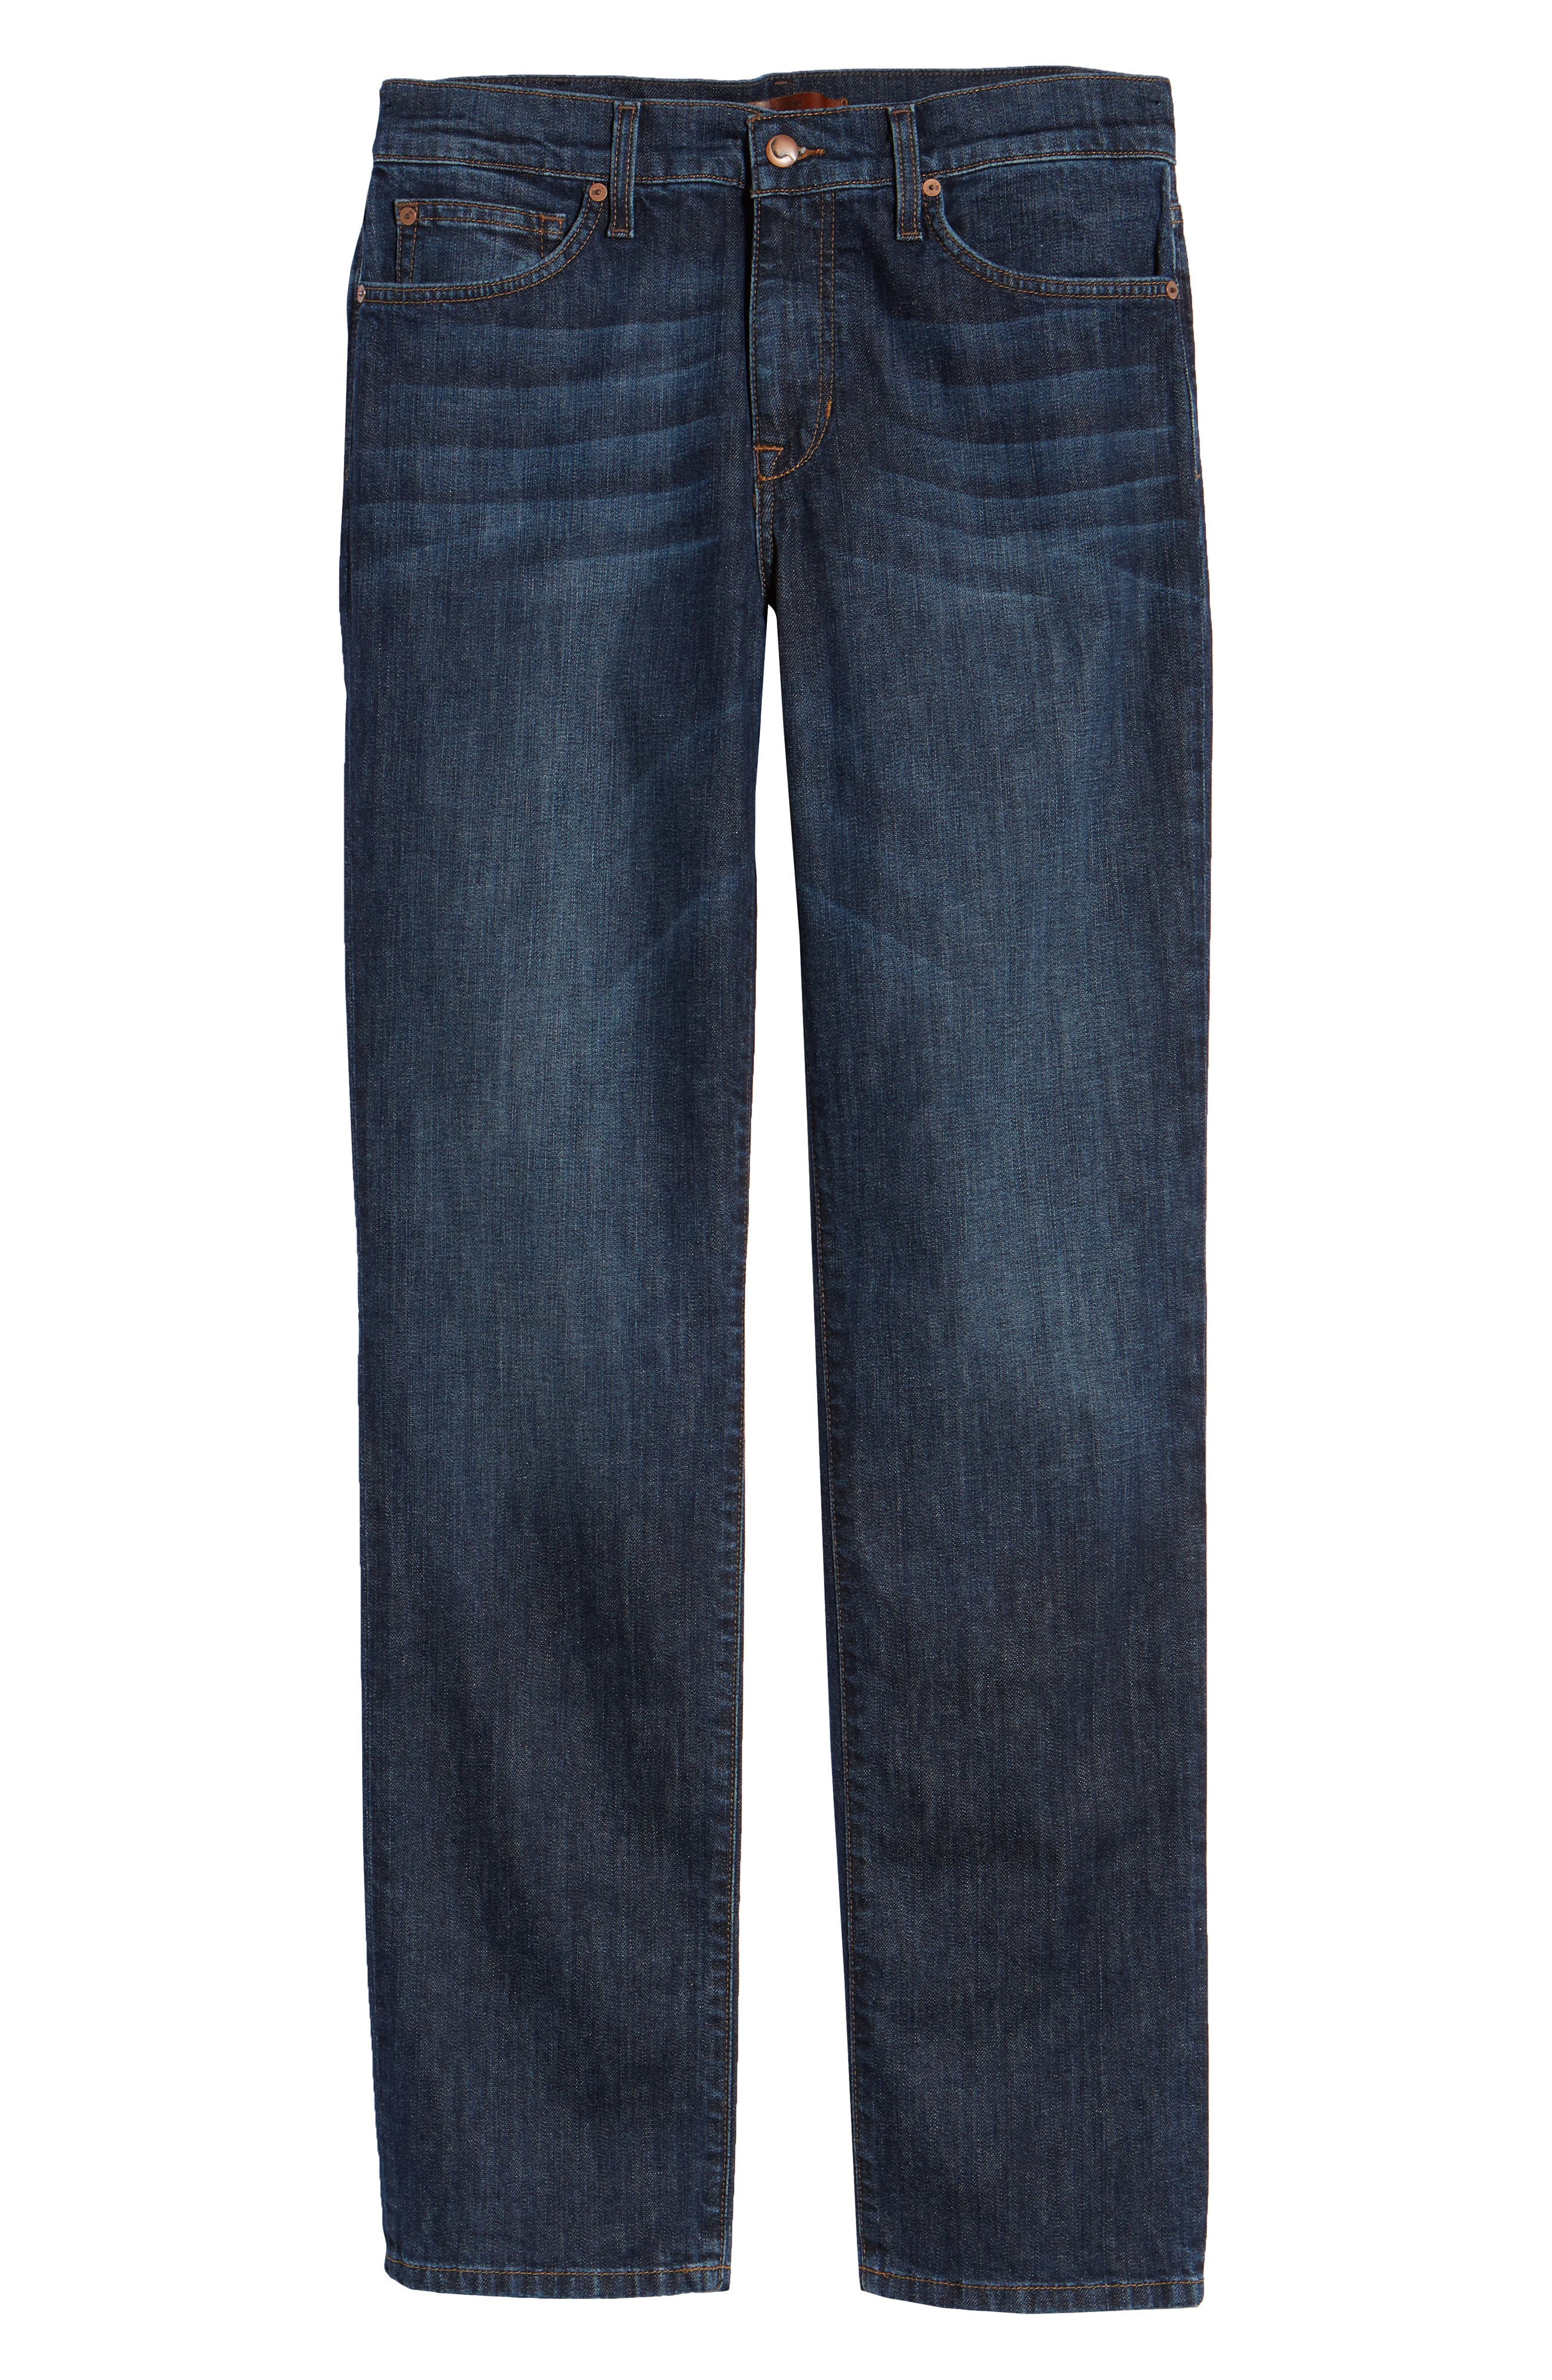 Classic Straight Fit Jeans,                             Alternate thumbnail 6, color,                             DREXLER